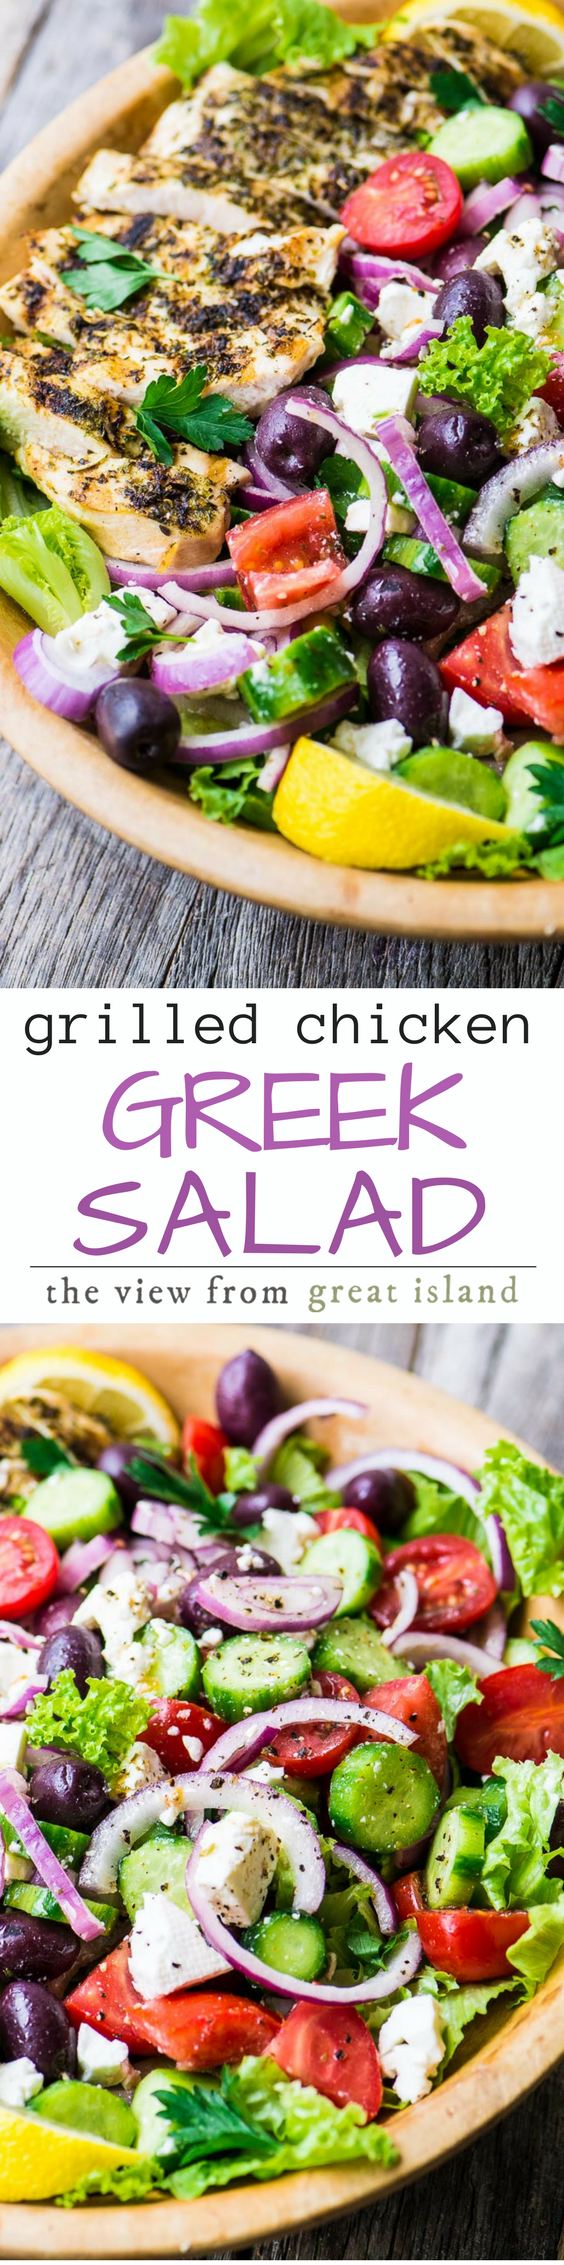 Grilled Chicken Greek Salad ~ if you love a great main course salad in the warmer months like I do, then this vibrant Greek salad topped with lean grilled chicken breast will win you over for sure. It's a light but totally satisfying main course salad. #salad #chicken #grilledchicken #bonelessskinlesschickenbreast #chickenbreast #chickensalad #healthydinner #maincoursesalad #Greek #Greekrecipe